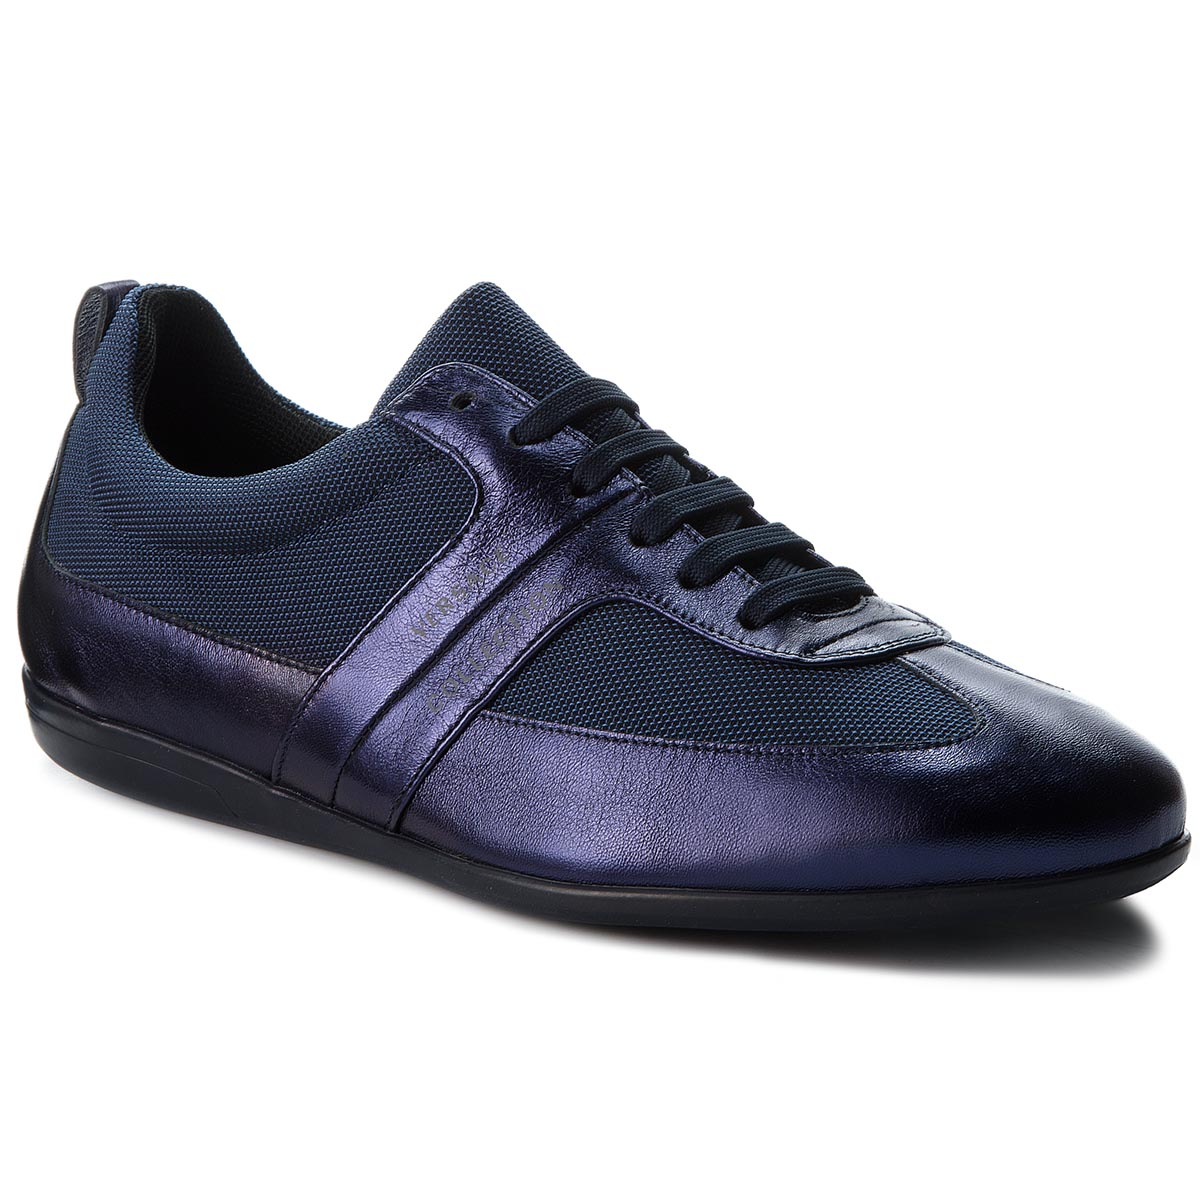 Leather Hilfiger Corporate Detail Tommy Sneaker Sneakers zpUqSMV